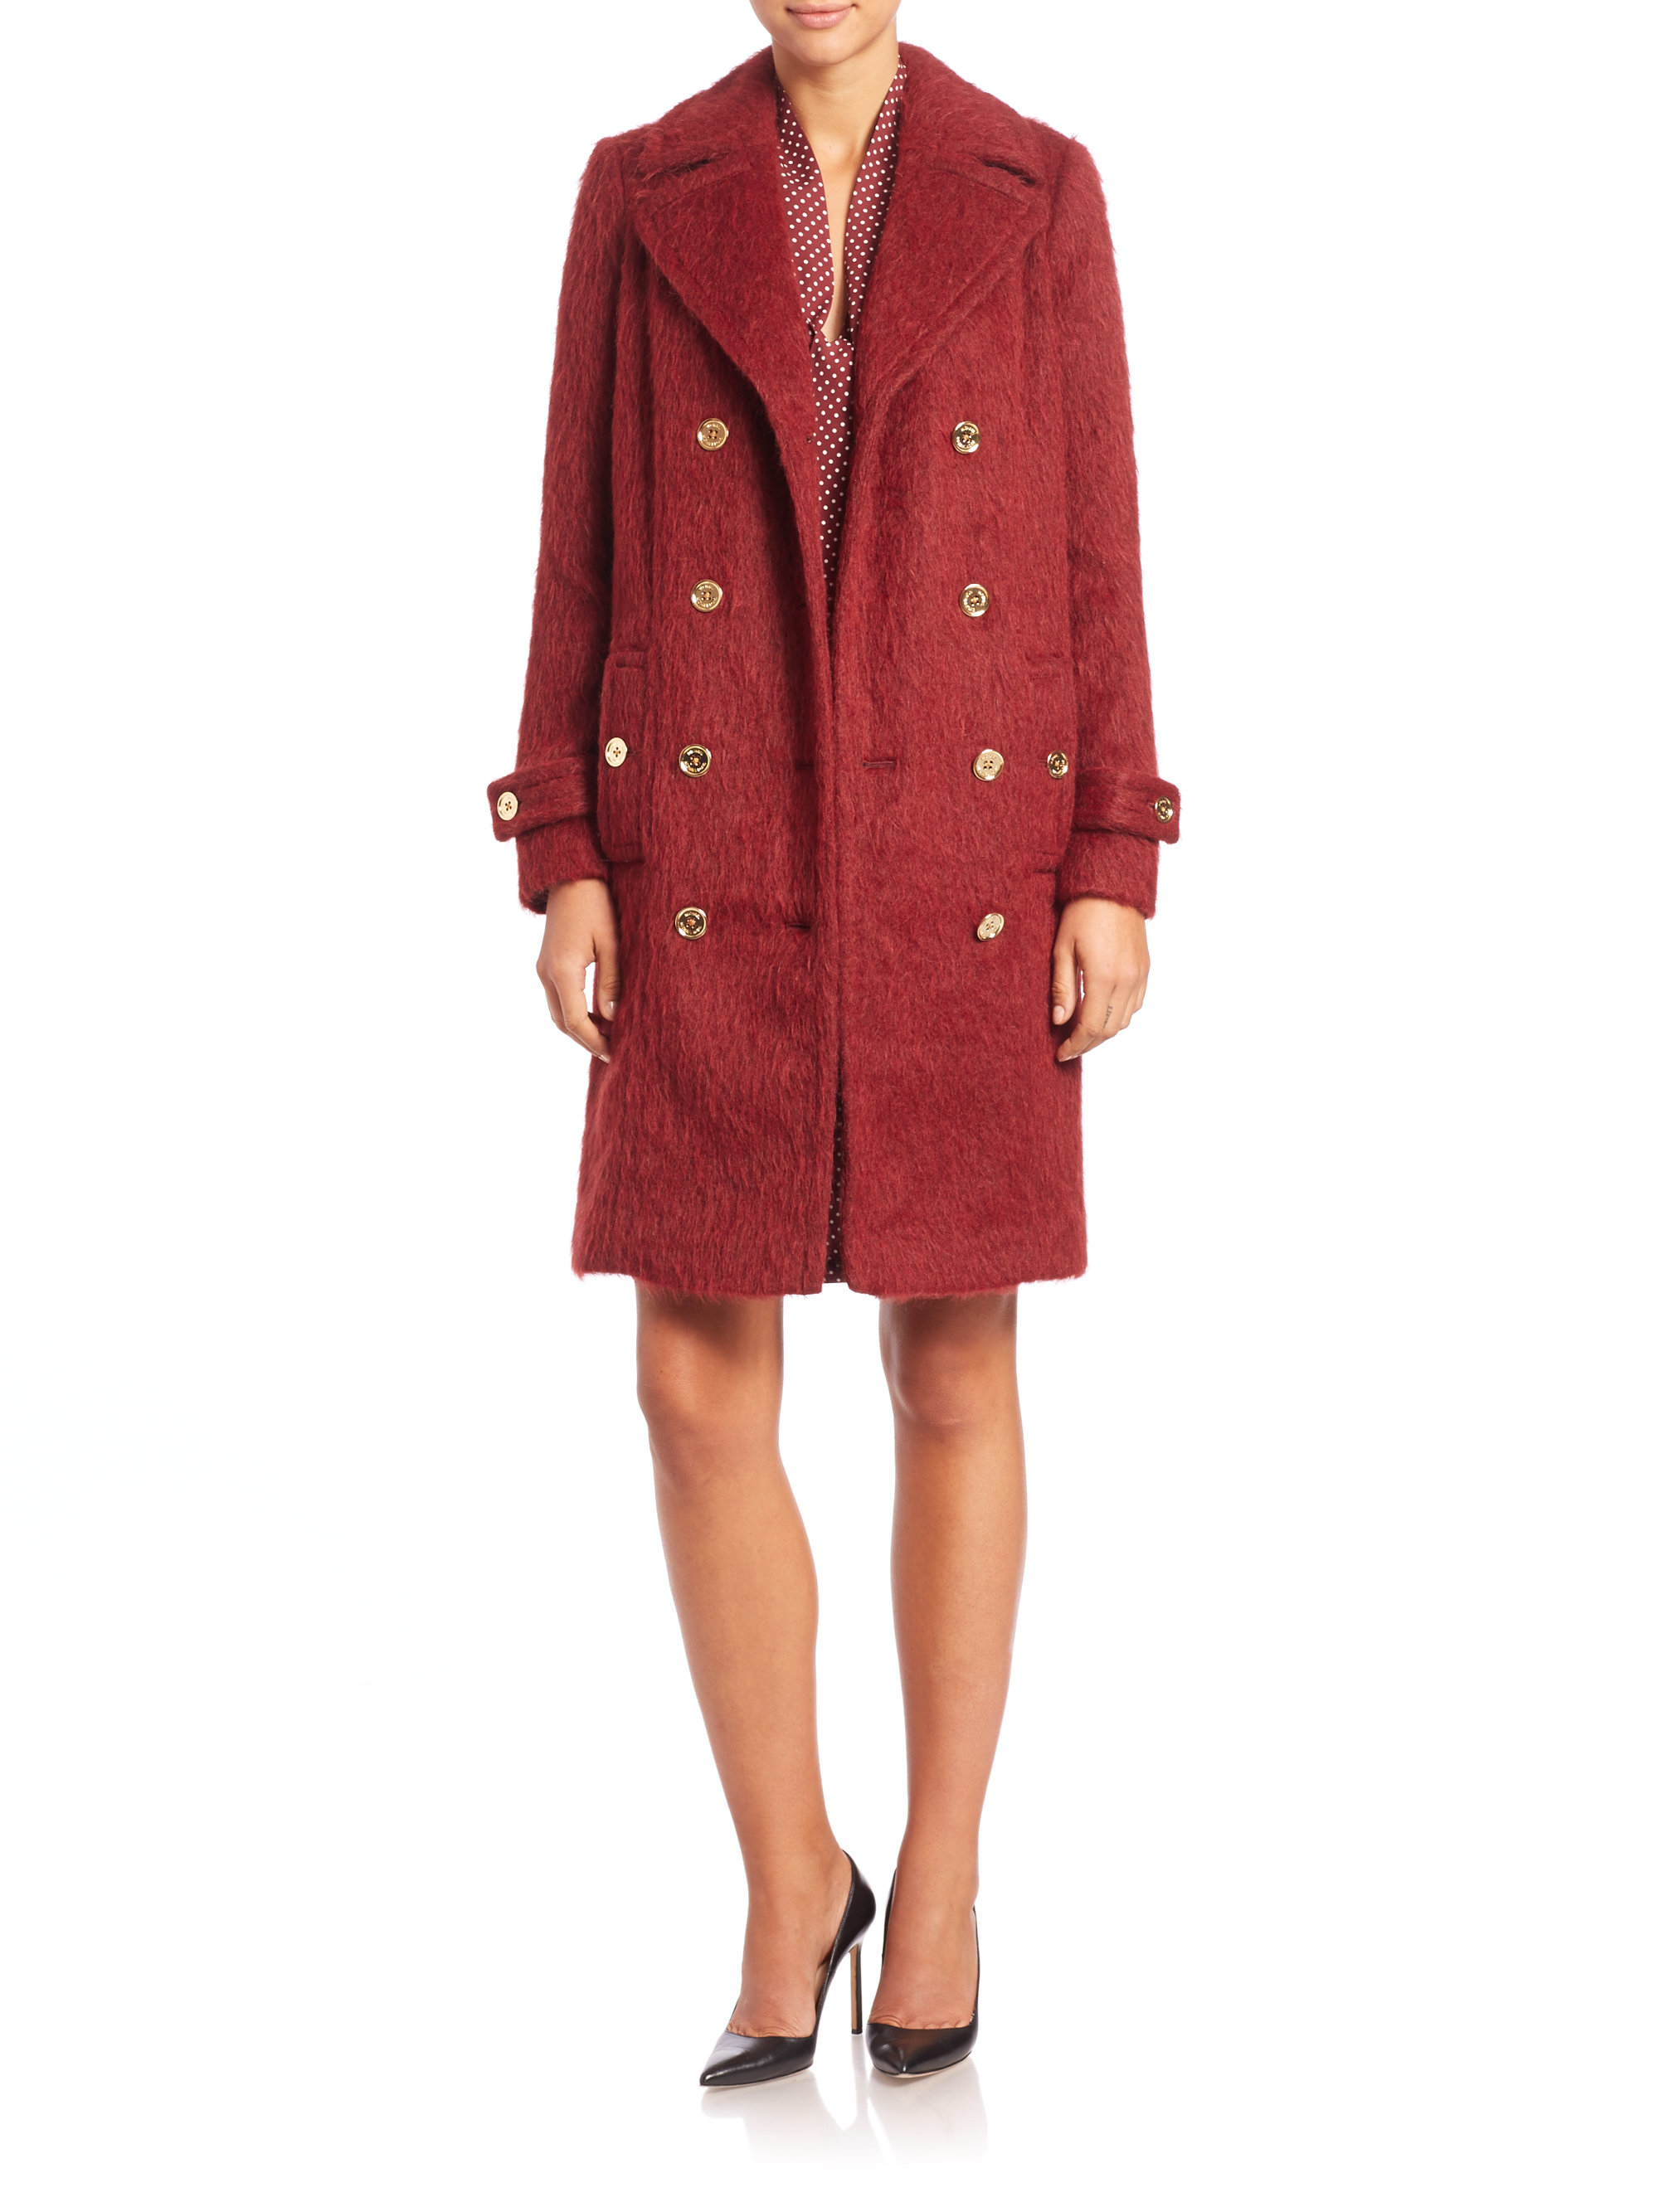 Michael michael kors Double-breasted Textured Coat in Purple   Lyst